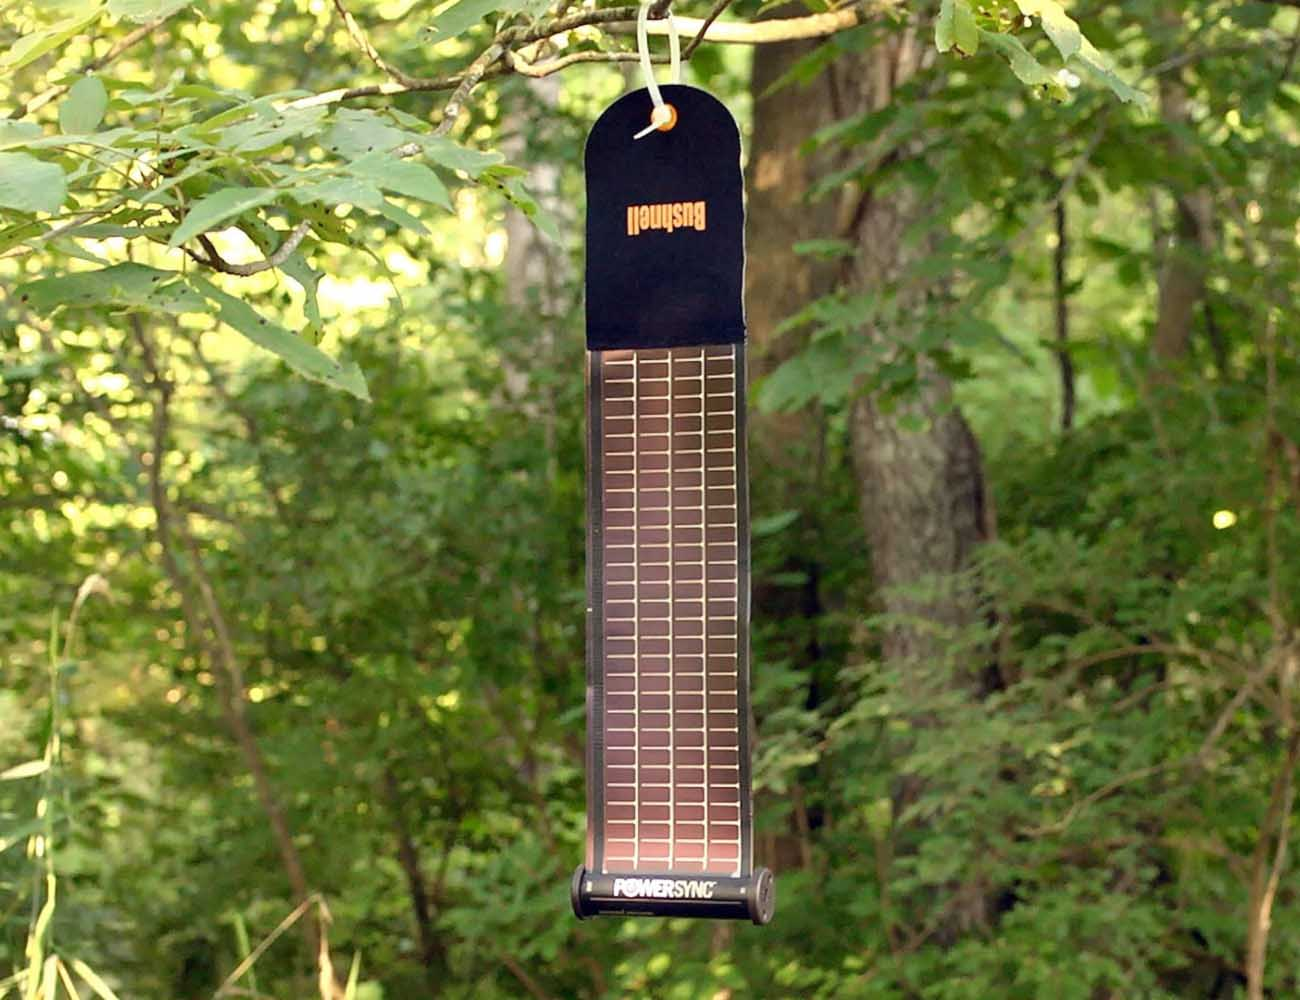 Bushnell SolarWrap – Solar Power Charger